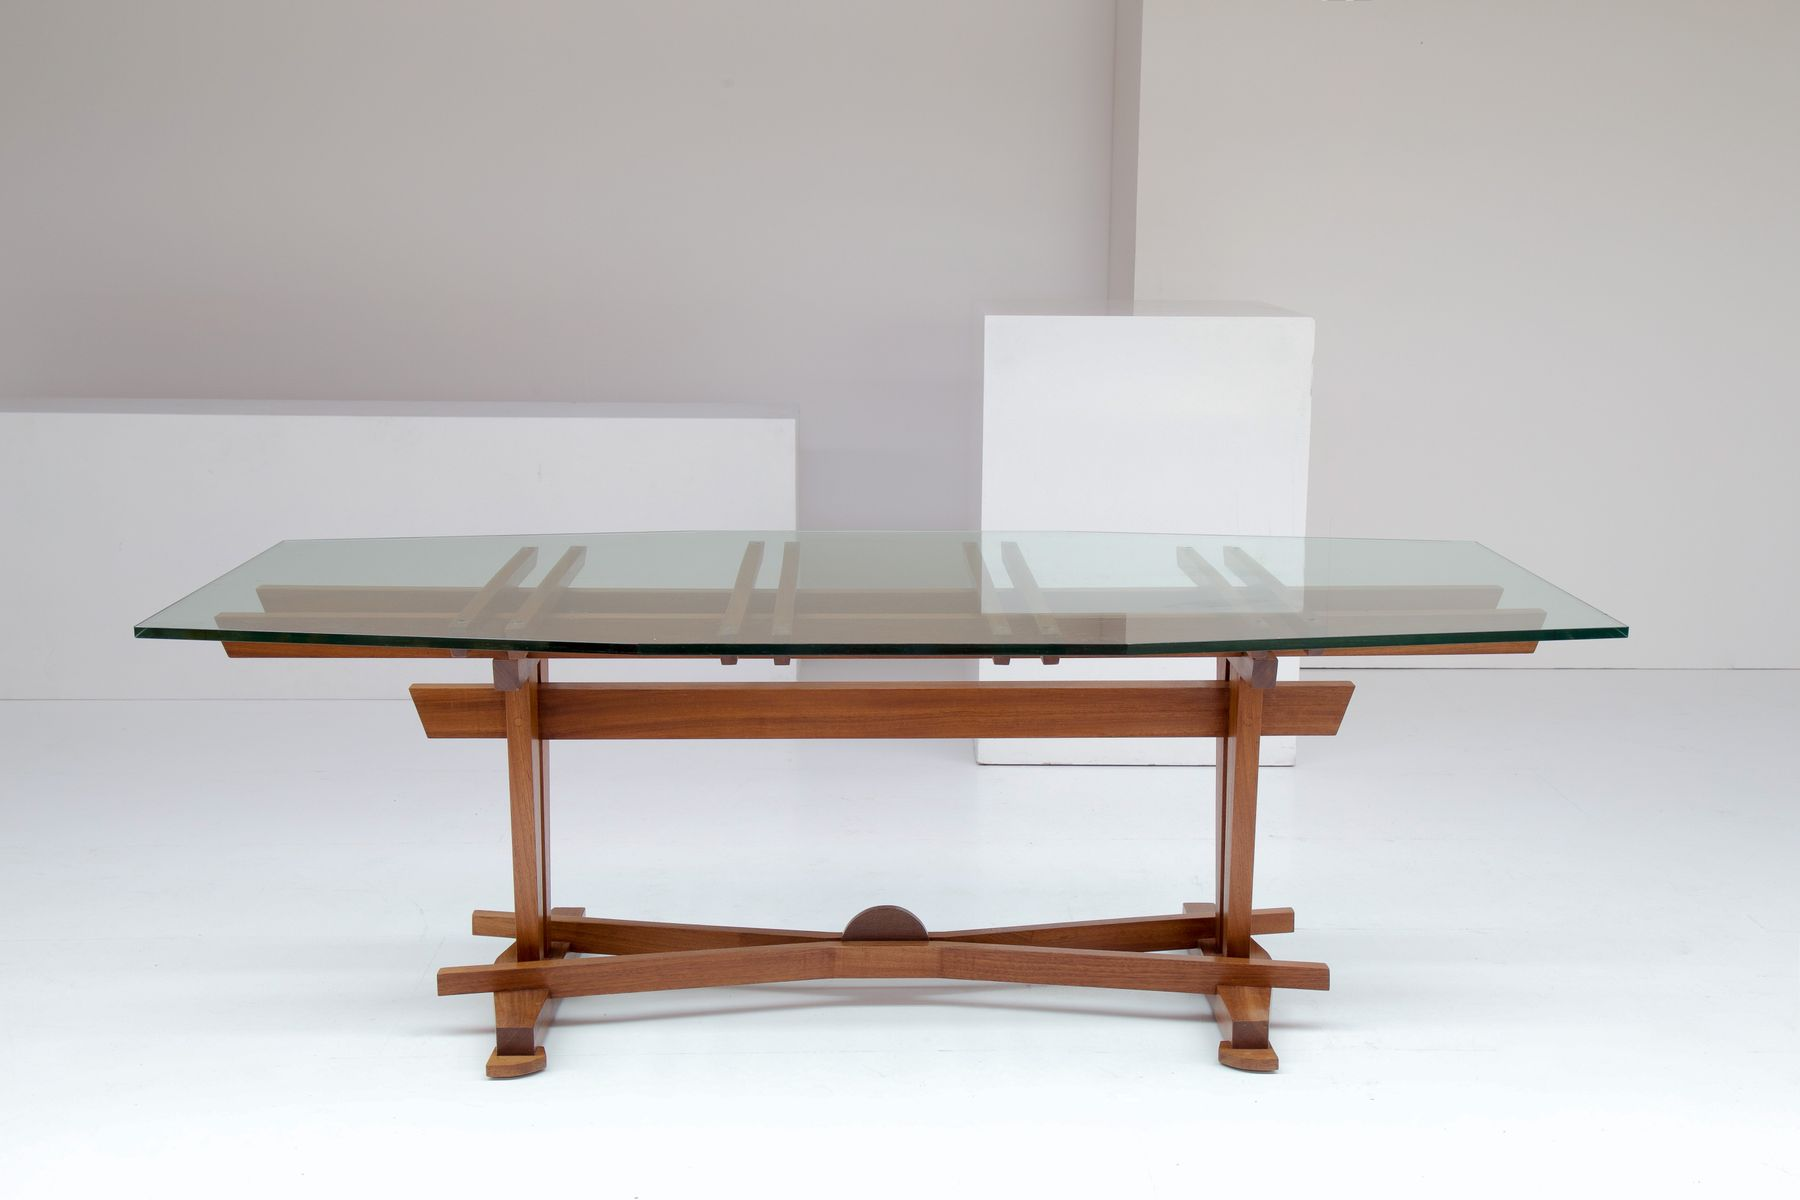 Vintage Wood Glass Dining Table By Koenraad Dewulf For Sale At